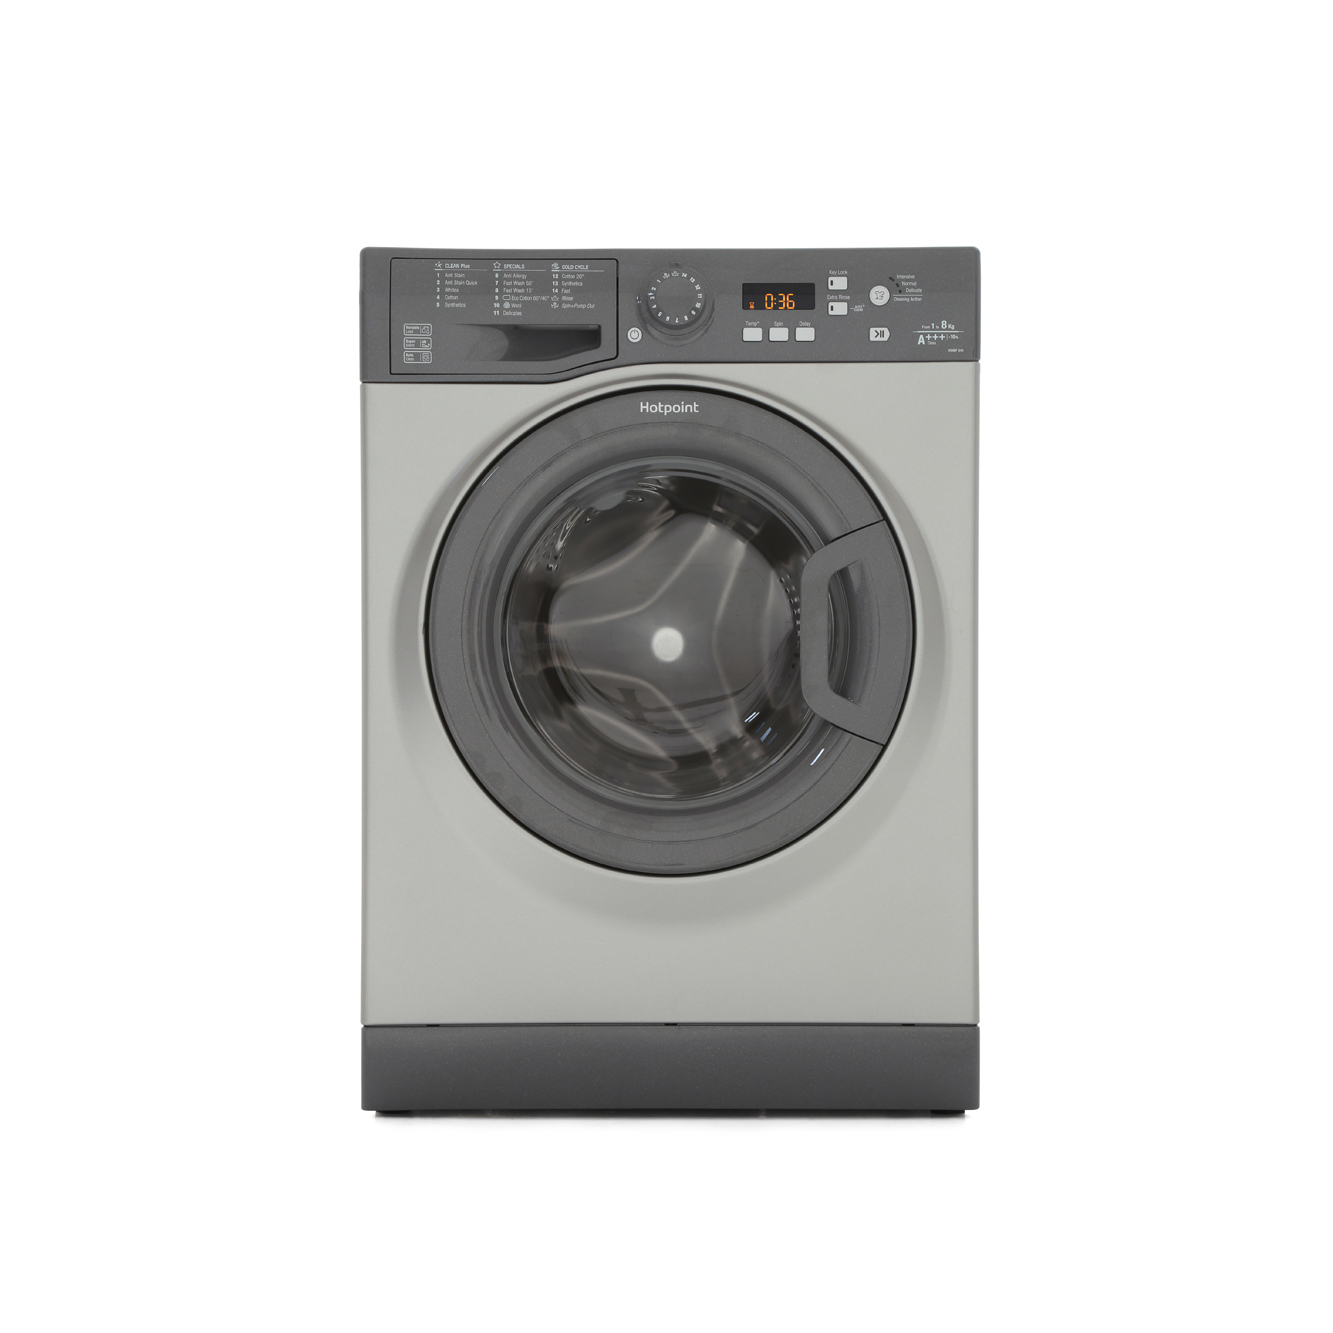 Hotpoint Top Loading Washing Machine Hotpoint Wmbf844g Washing Machine Graphite Buy Online Today